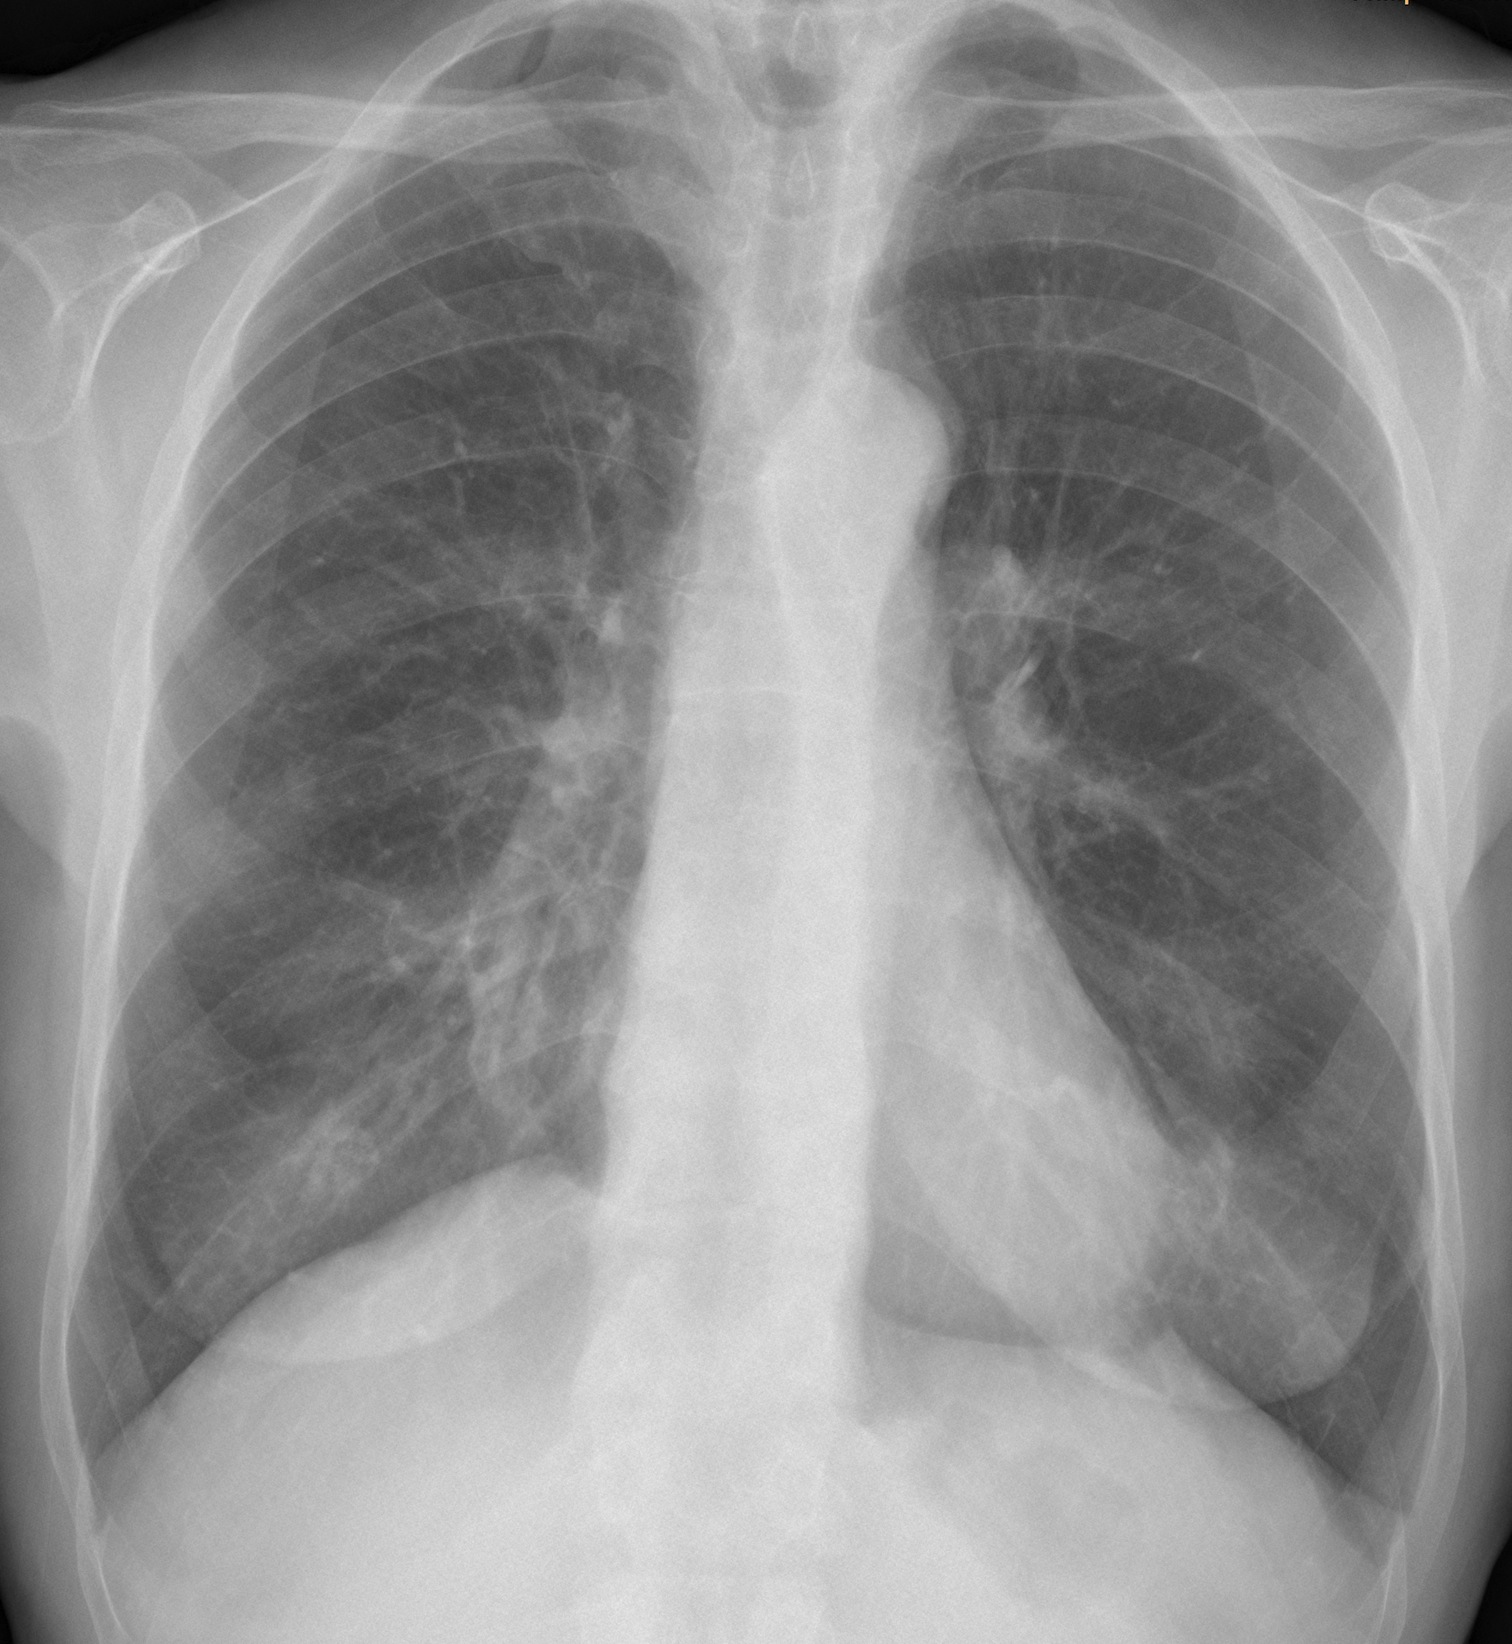 64-year-old female, PA chest